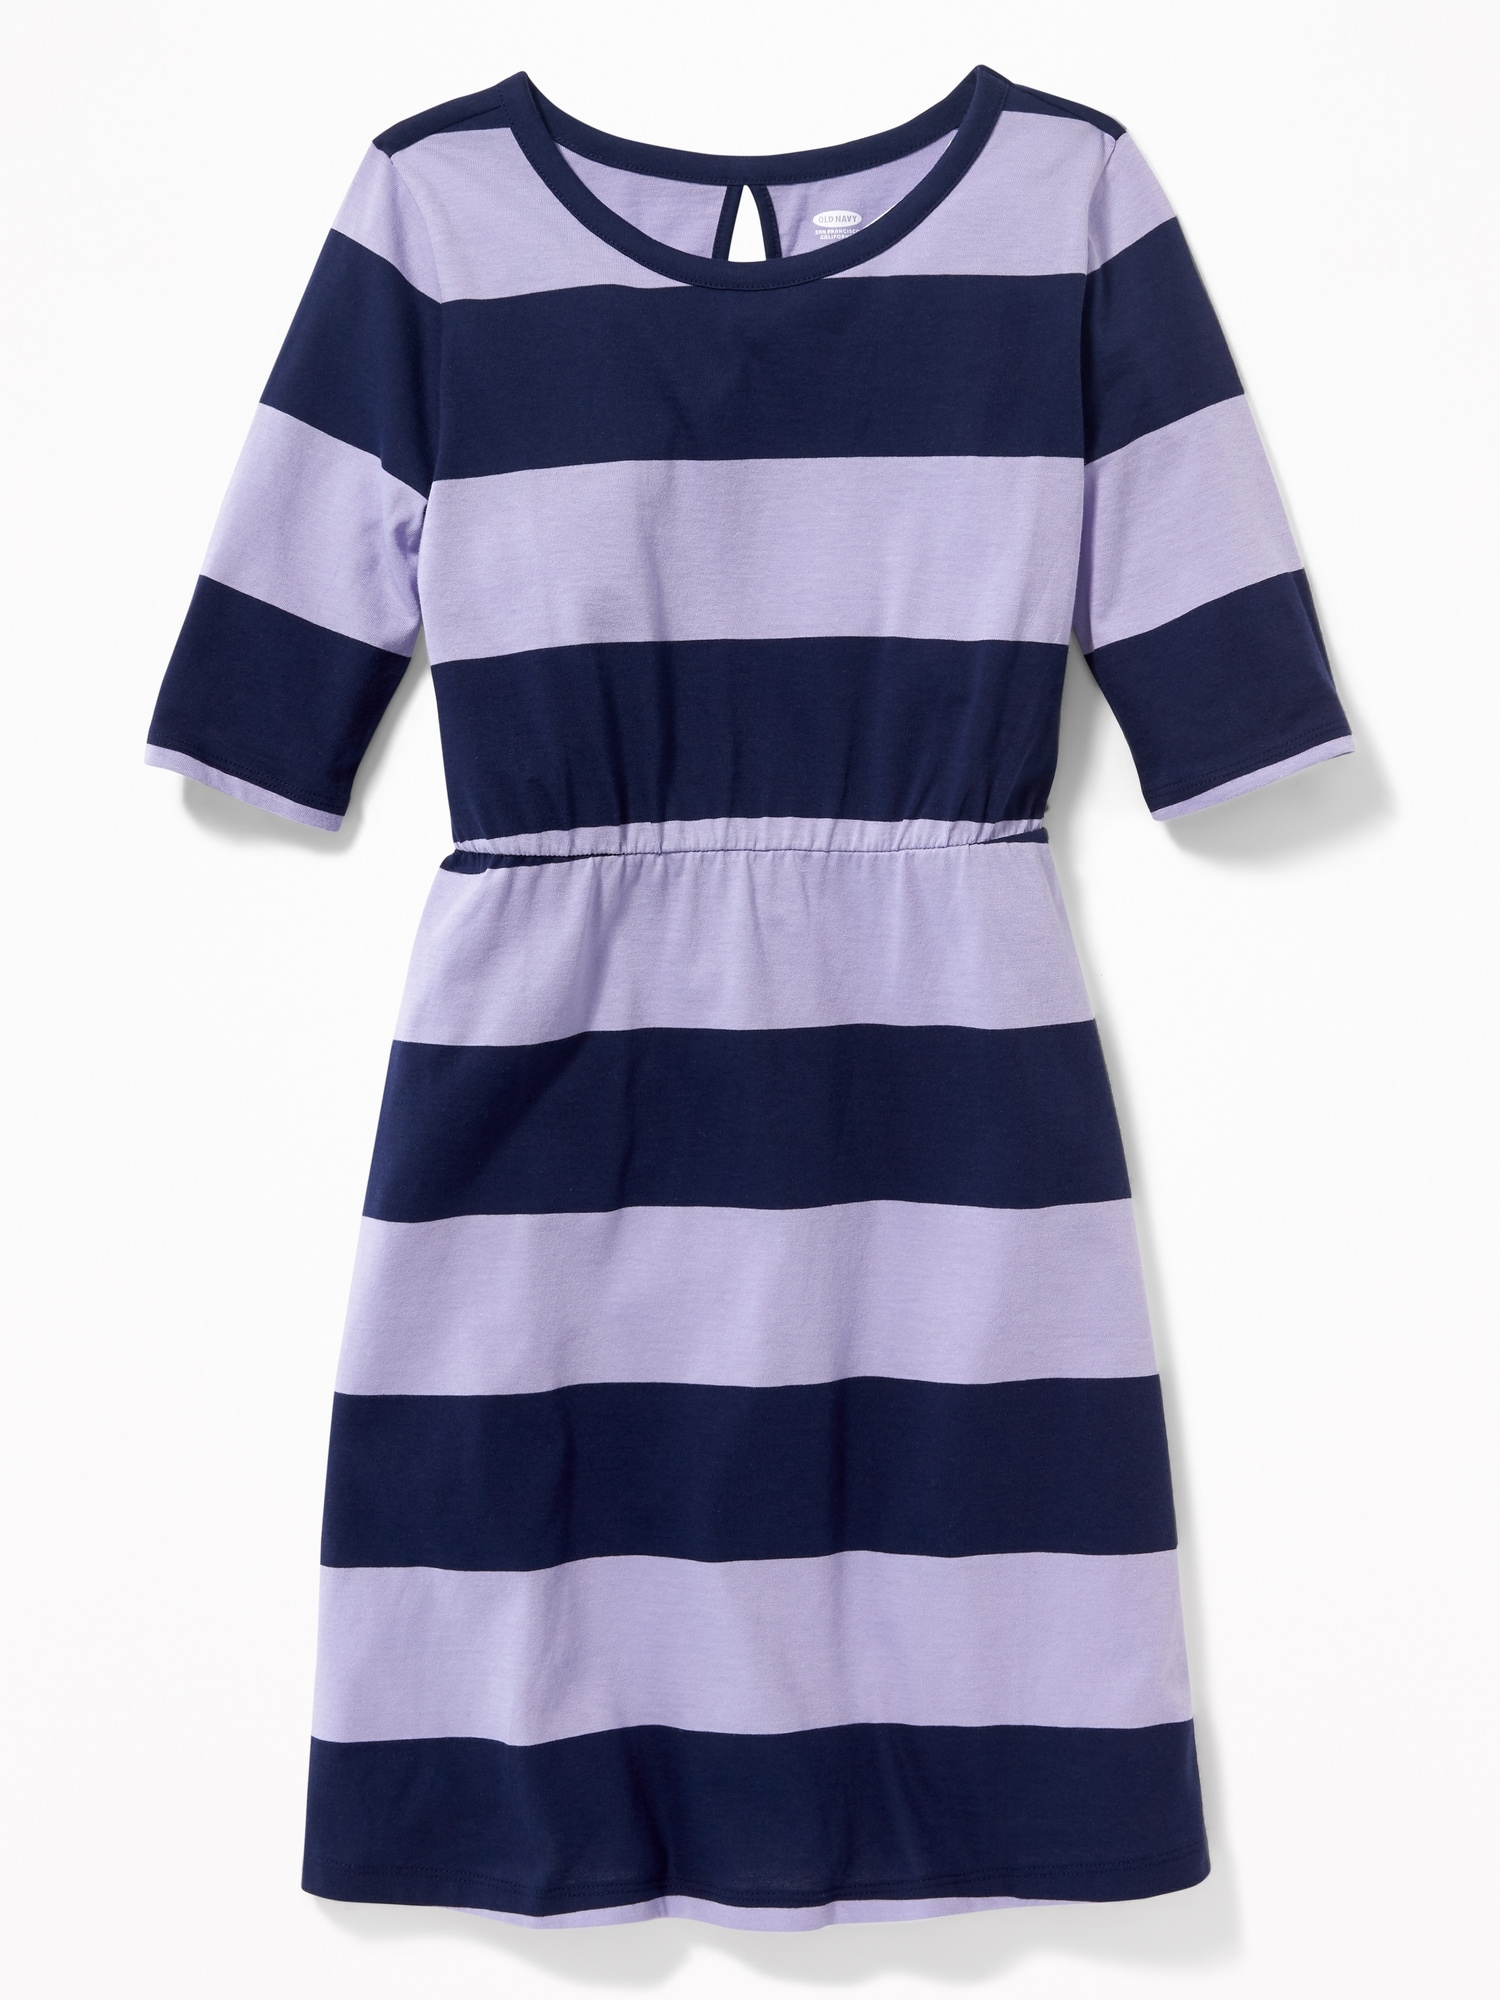 0a403a539 Printed Jersey Fit   Flare Dress for Girls